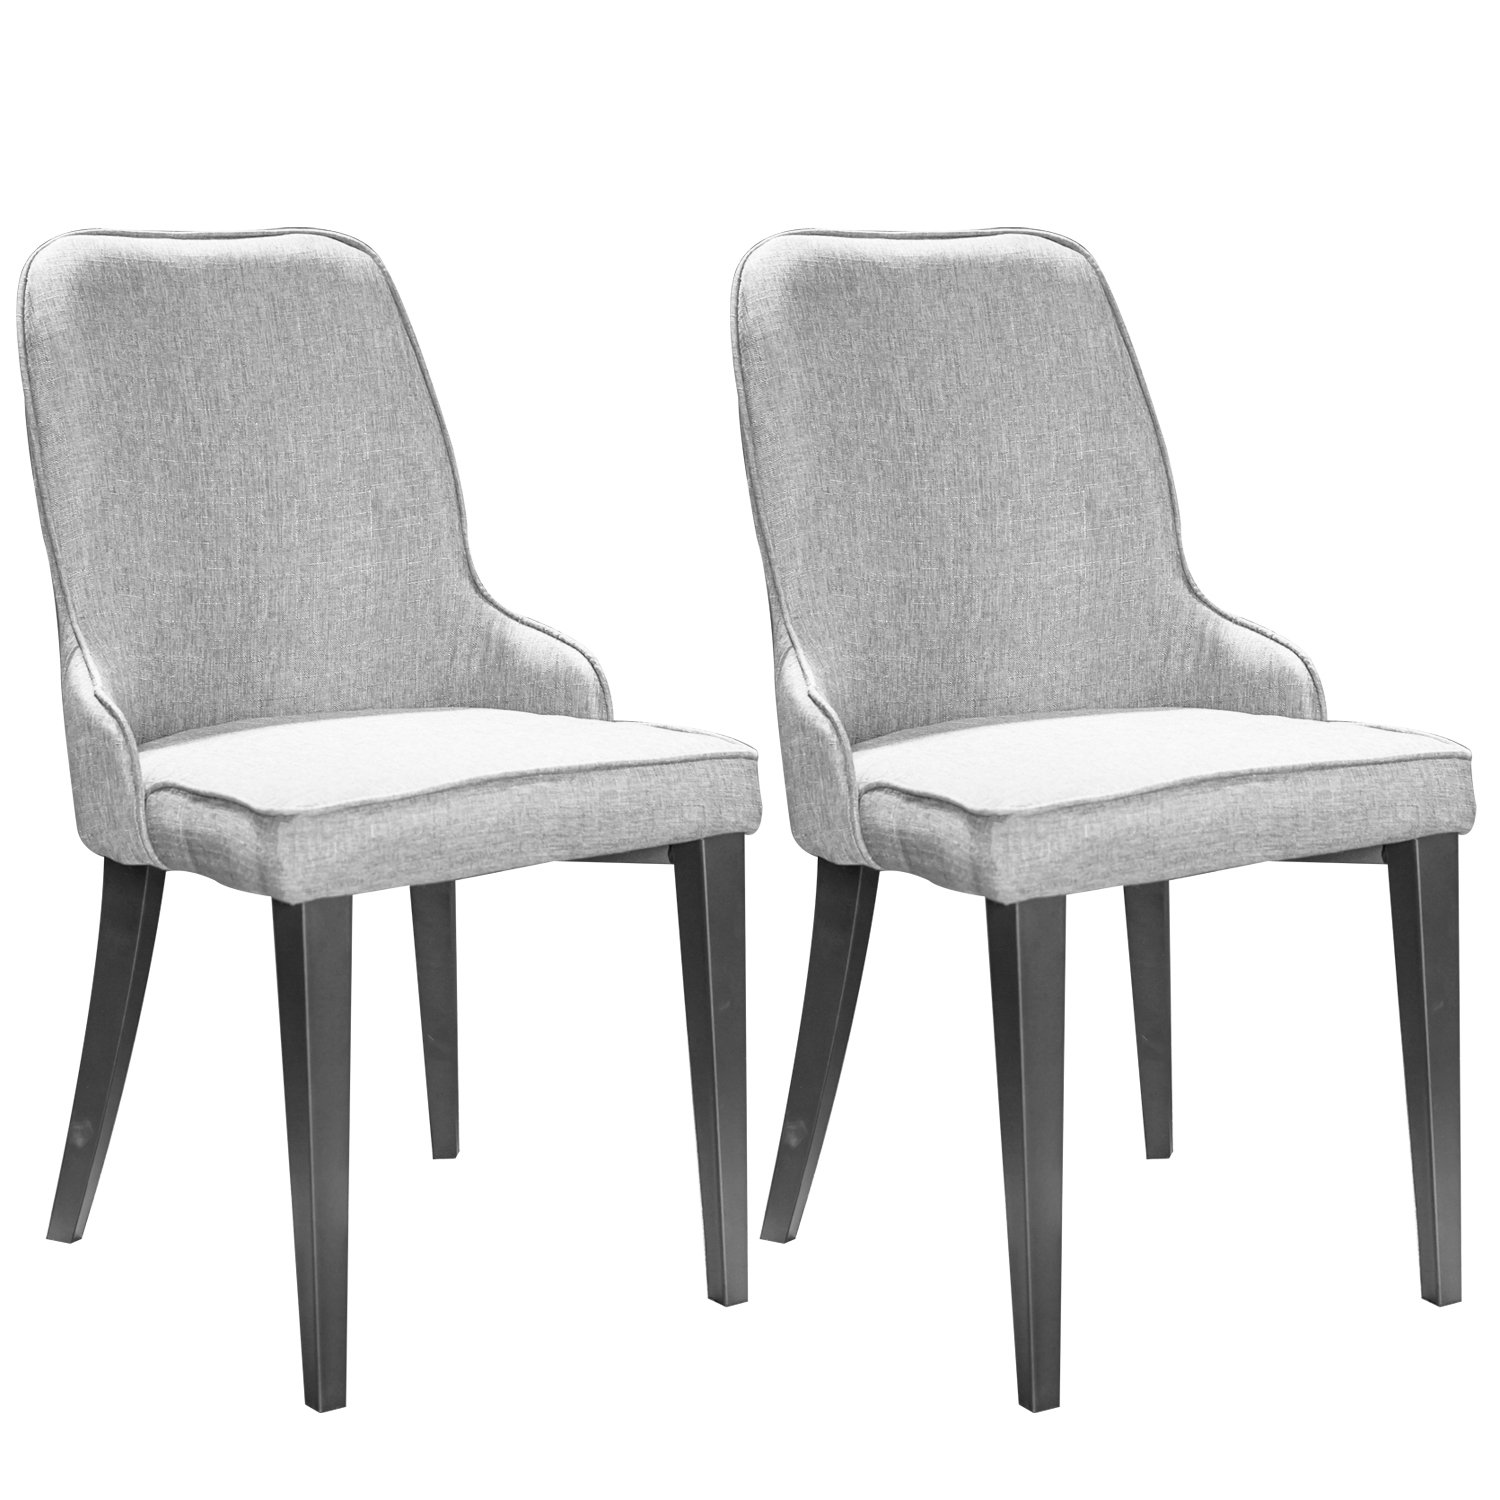 Merax Set of 2 Metal Dining Chairs with Padded Seat and Back (Grey)